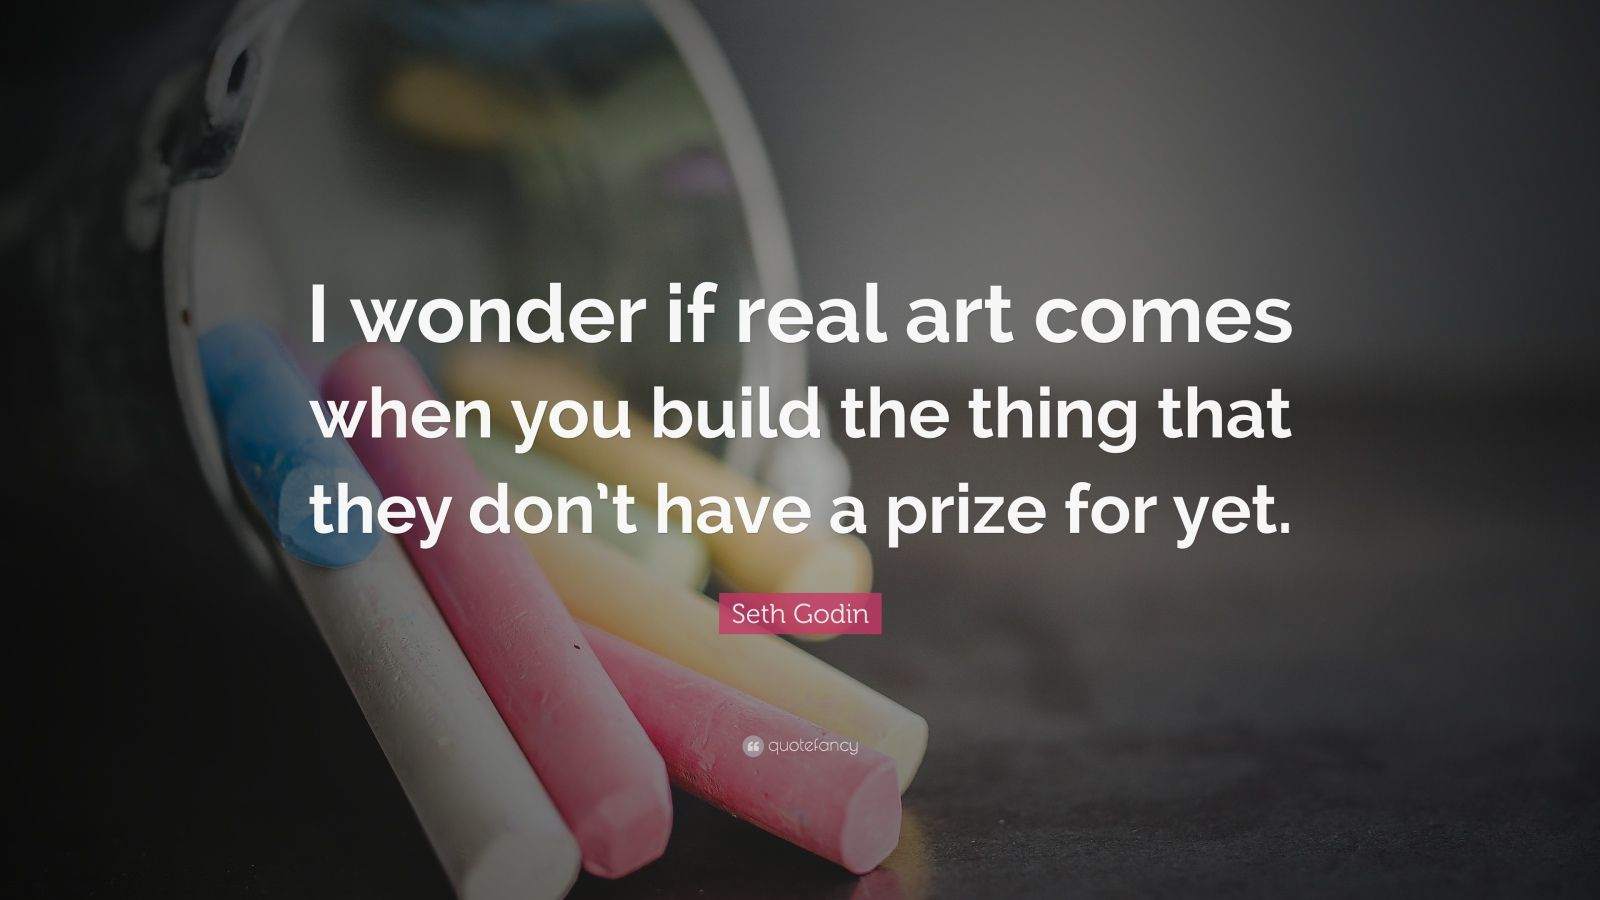 """Seth Godin Quote: """"I wonder if real art comes when you build the thing that they don't have a prize for yet."""""""